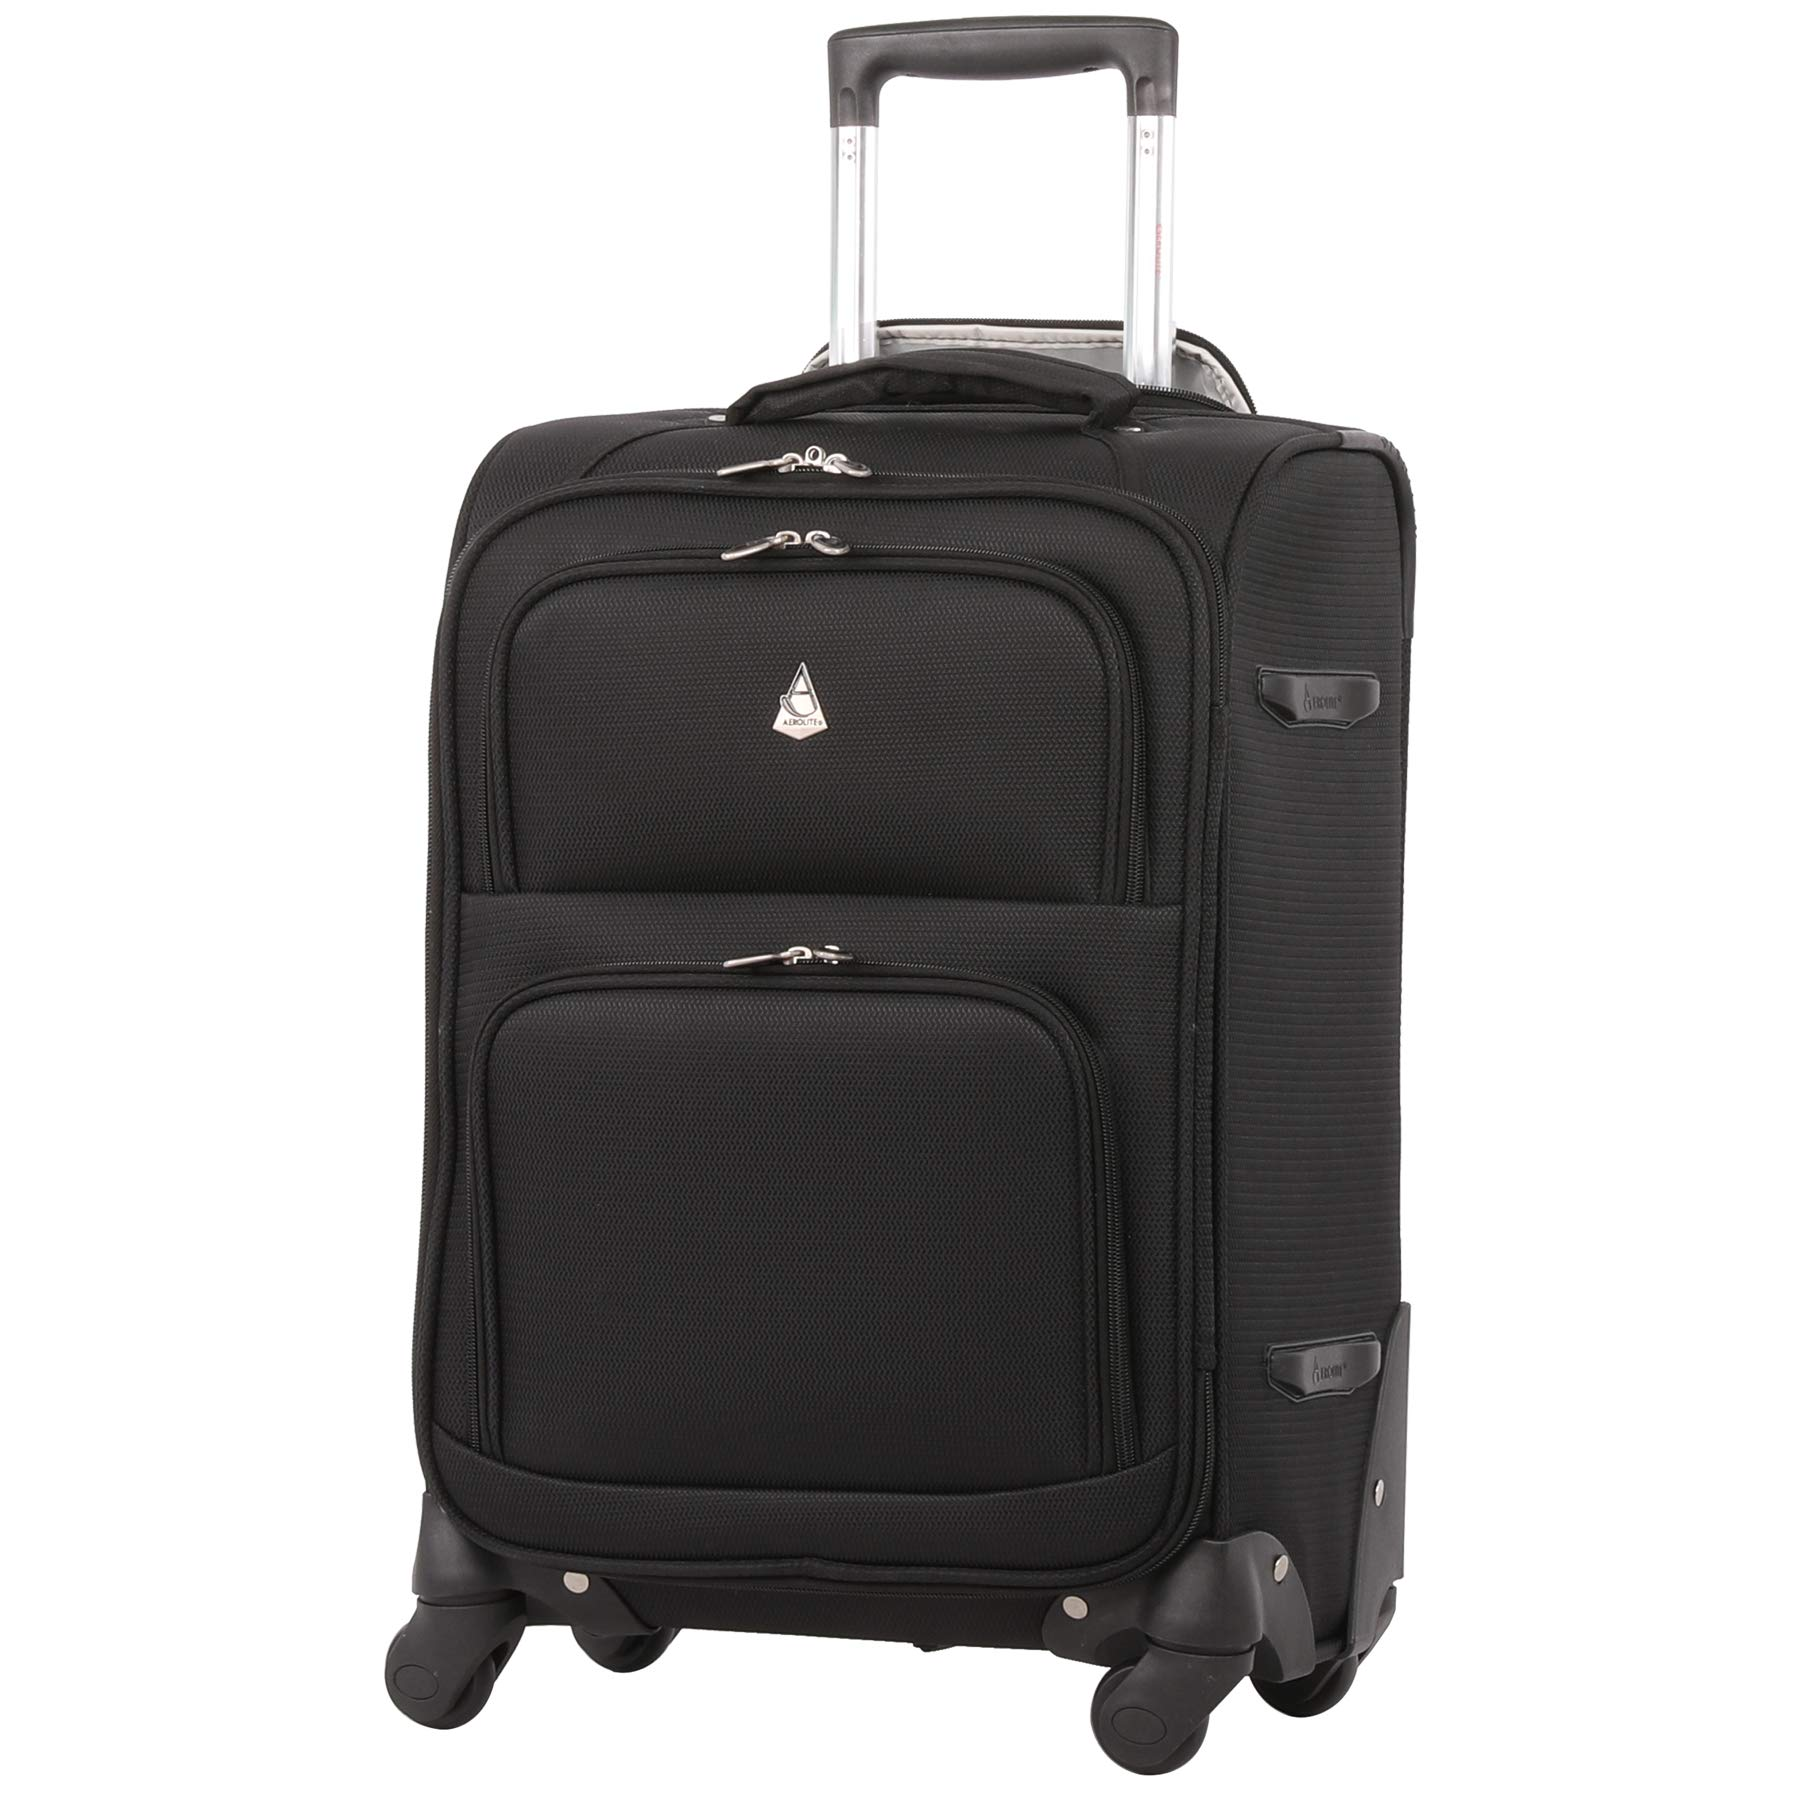 Maximum Allowance Airline Approved Delta United Southwest Carryon Suitcase